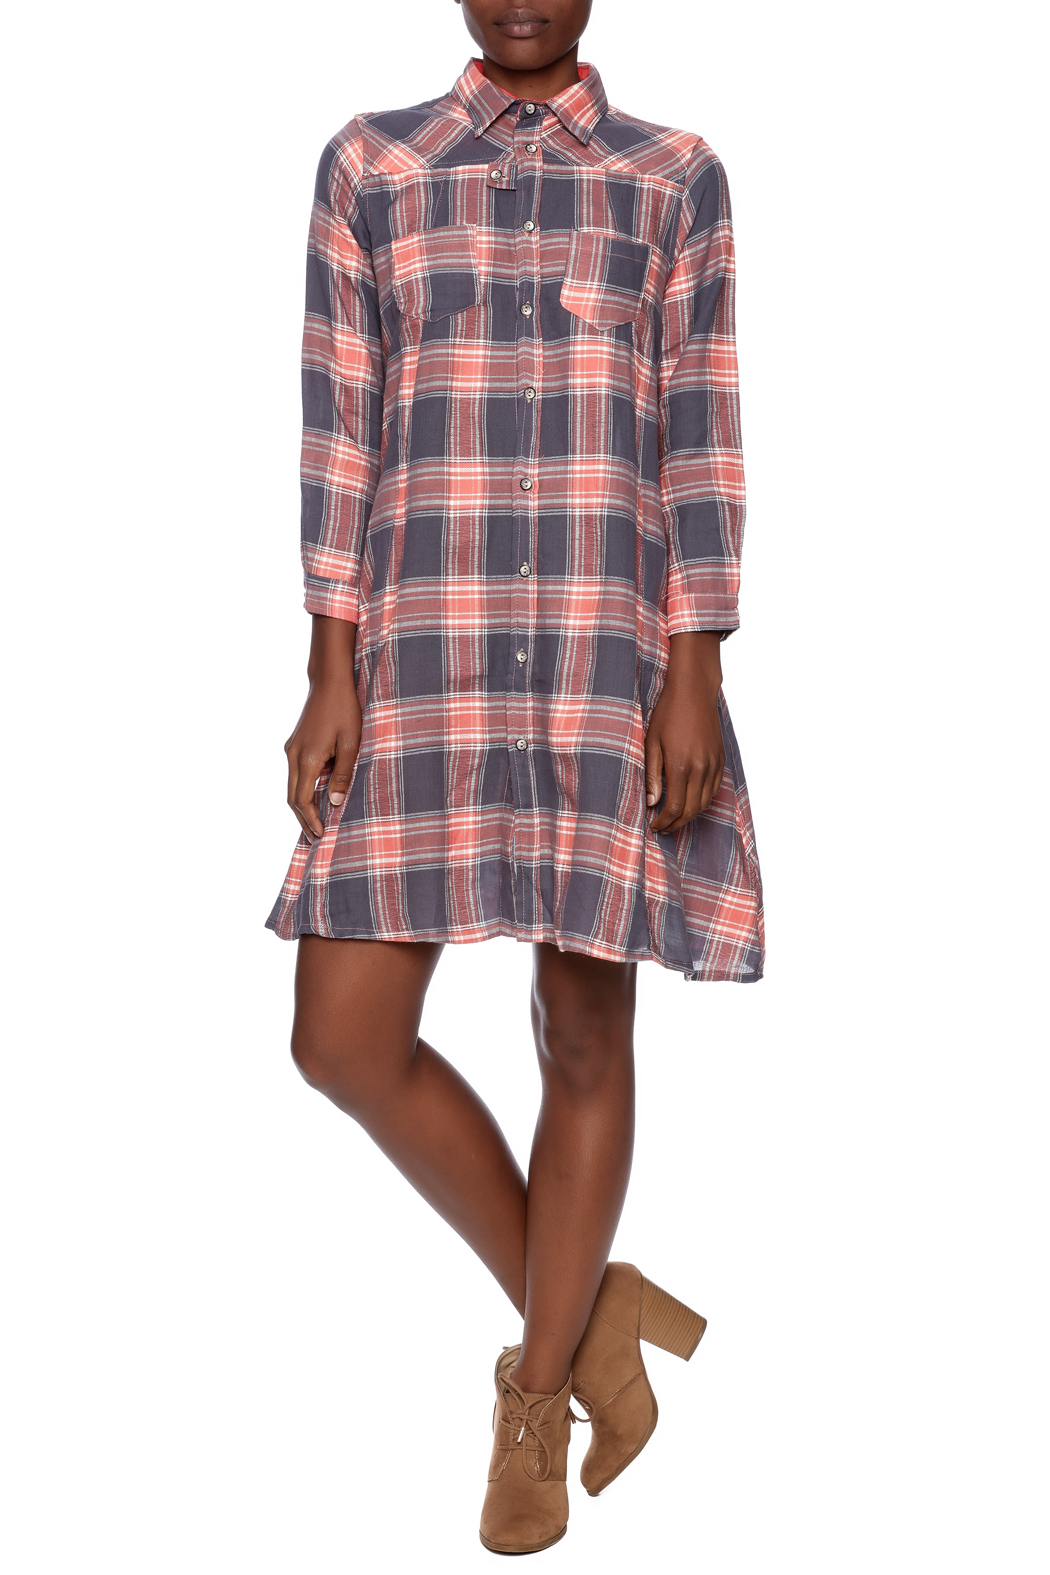 NU New York Button Down Plaid Dress - Front Full Image